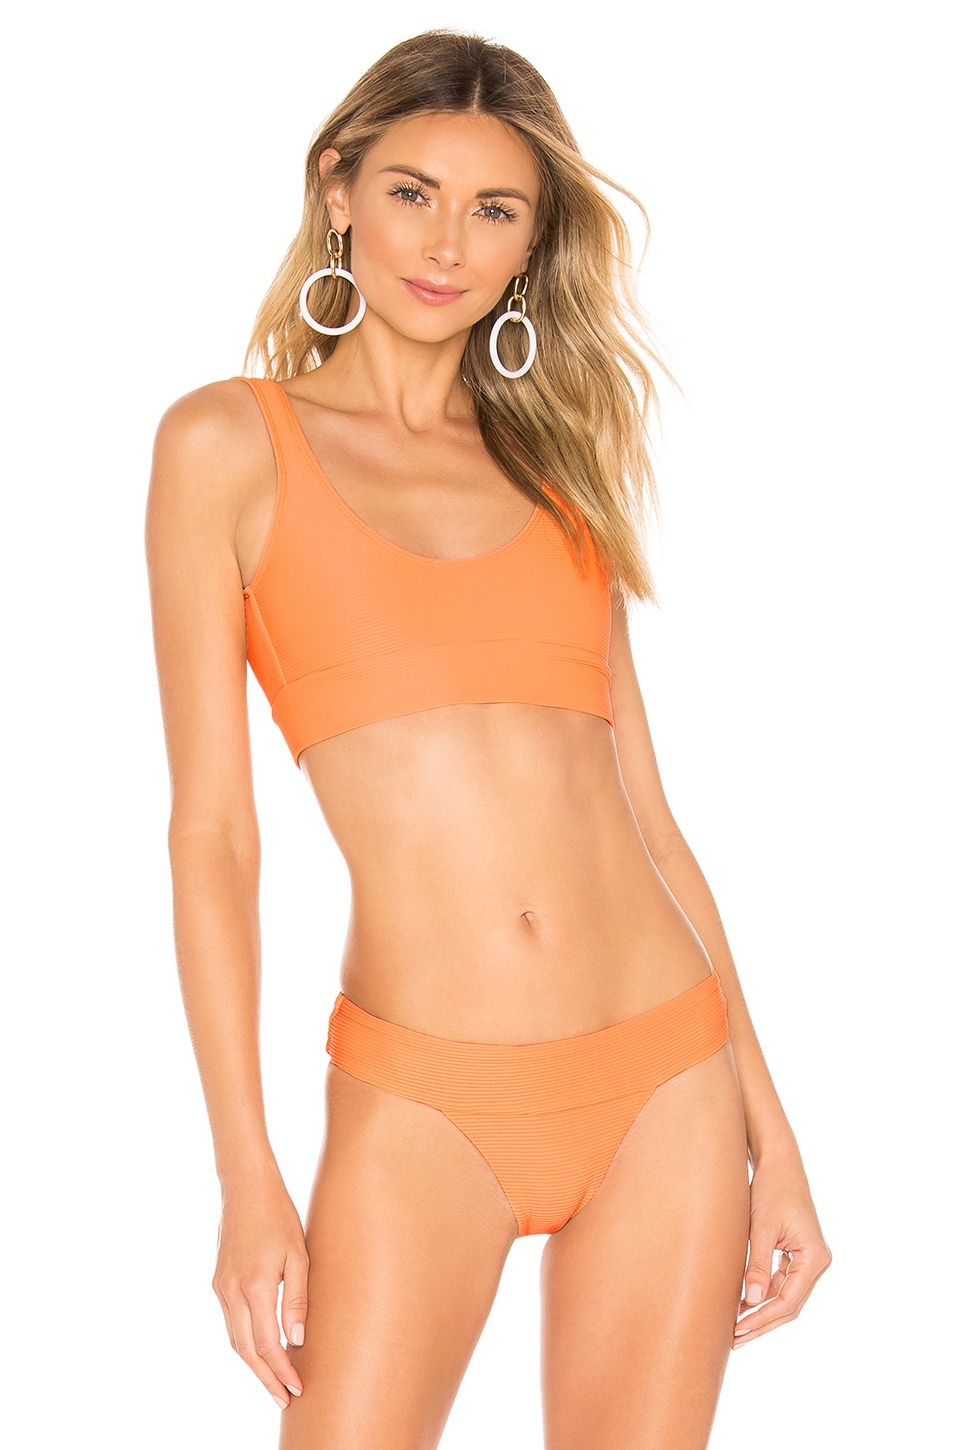 lovewave Penny Top in Apricot